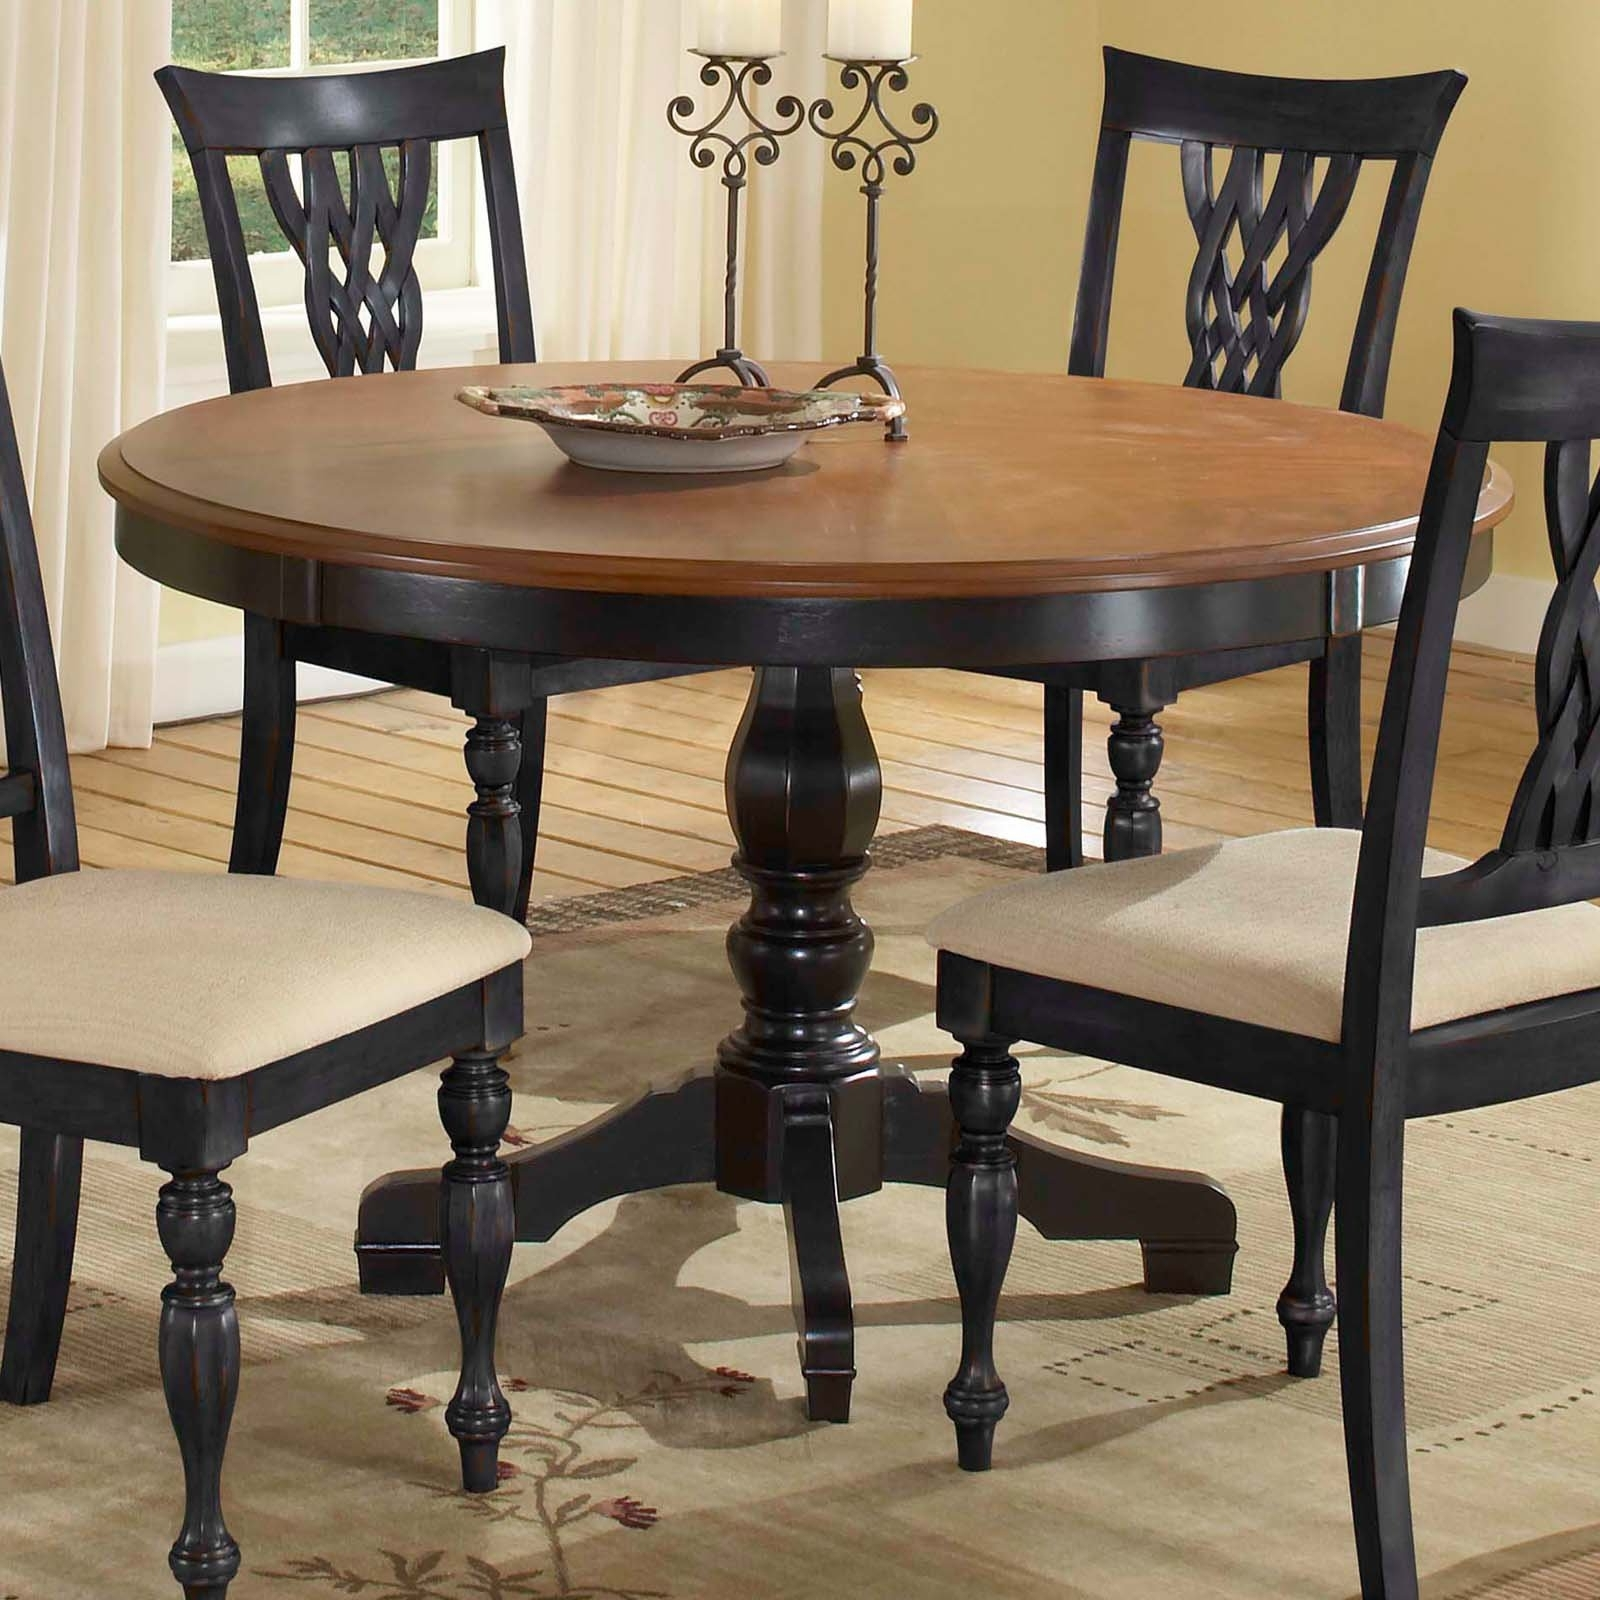 Jaxon Grey Round Extension Dining Tables For Preferred Dining Table Extension : Home Interior Design – Tips Build 48 Round (View 11 of 25)